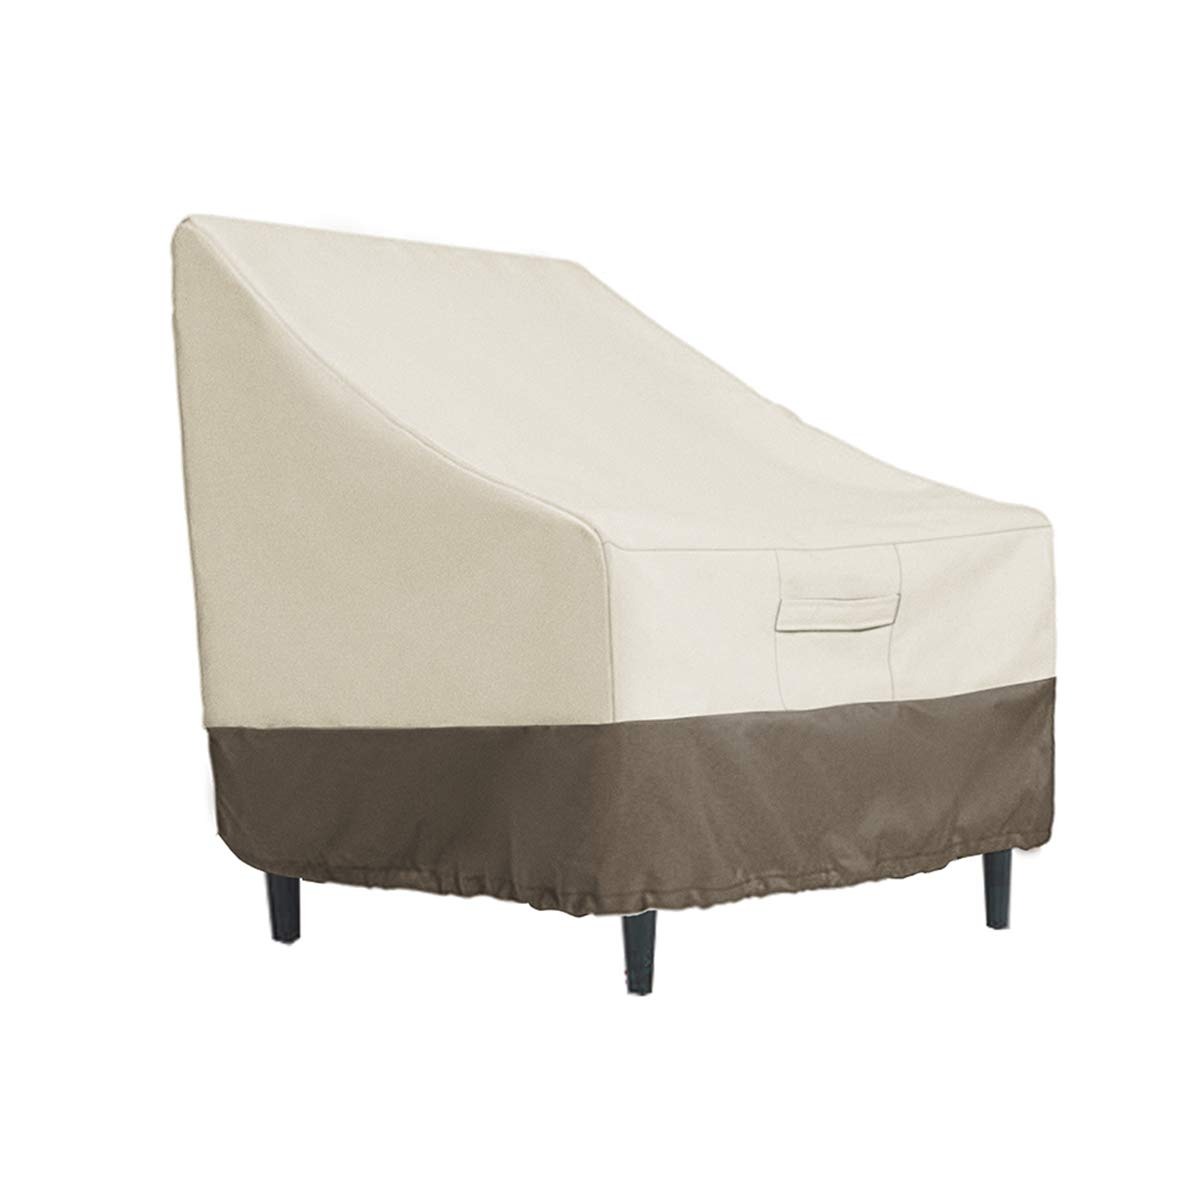 Amazon com phi villa patio lounge chair club chair cover durable waterproof outdoor furniture cover large l36 x d39 x h31 garden outdoor